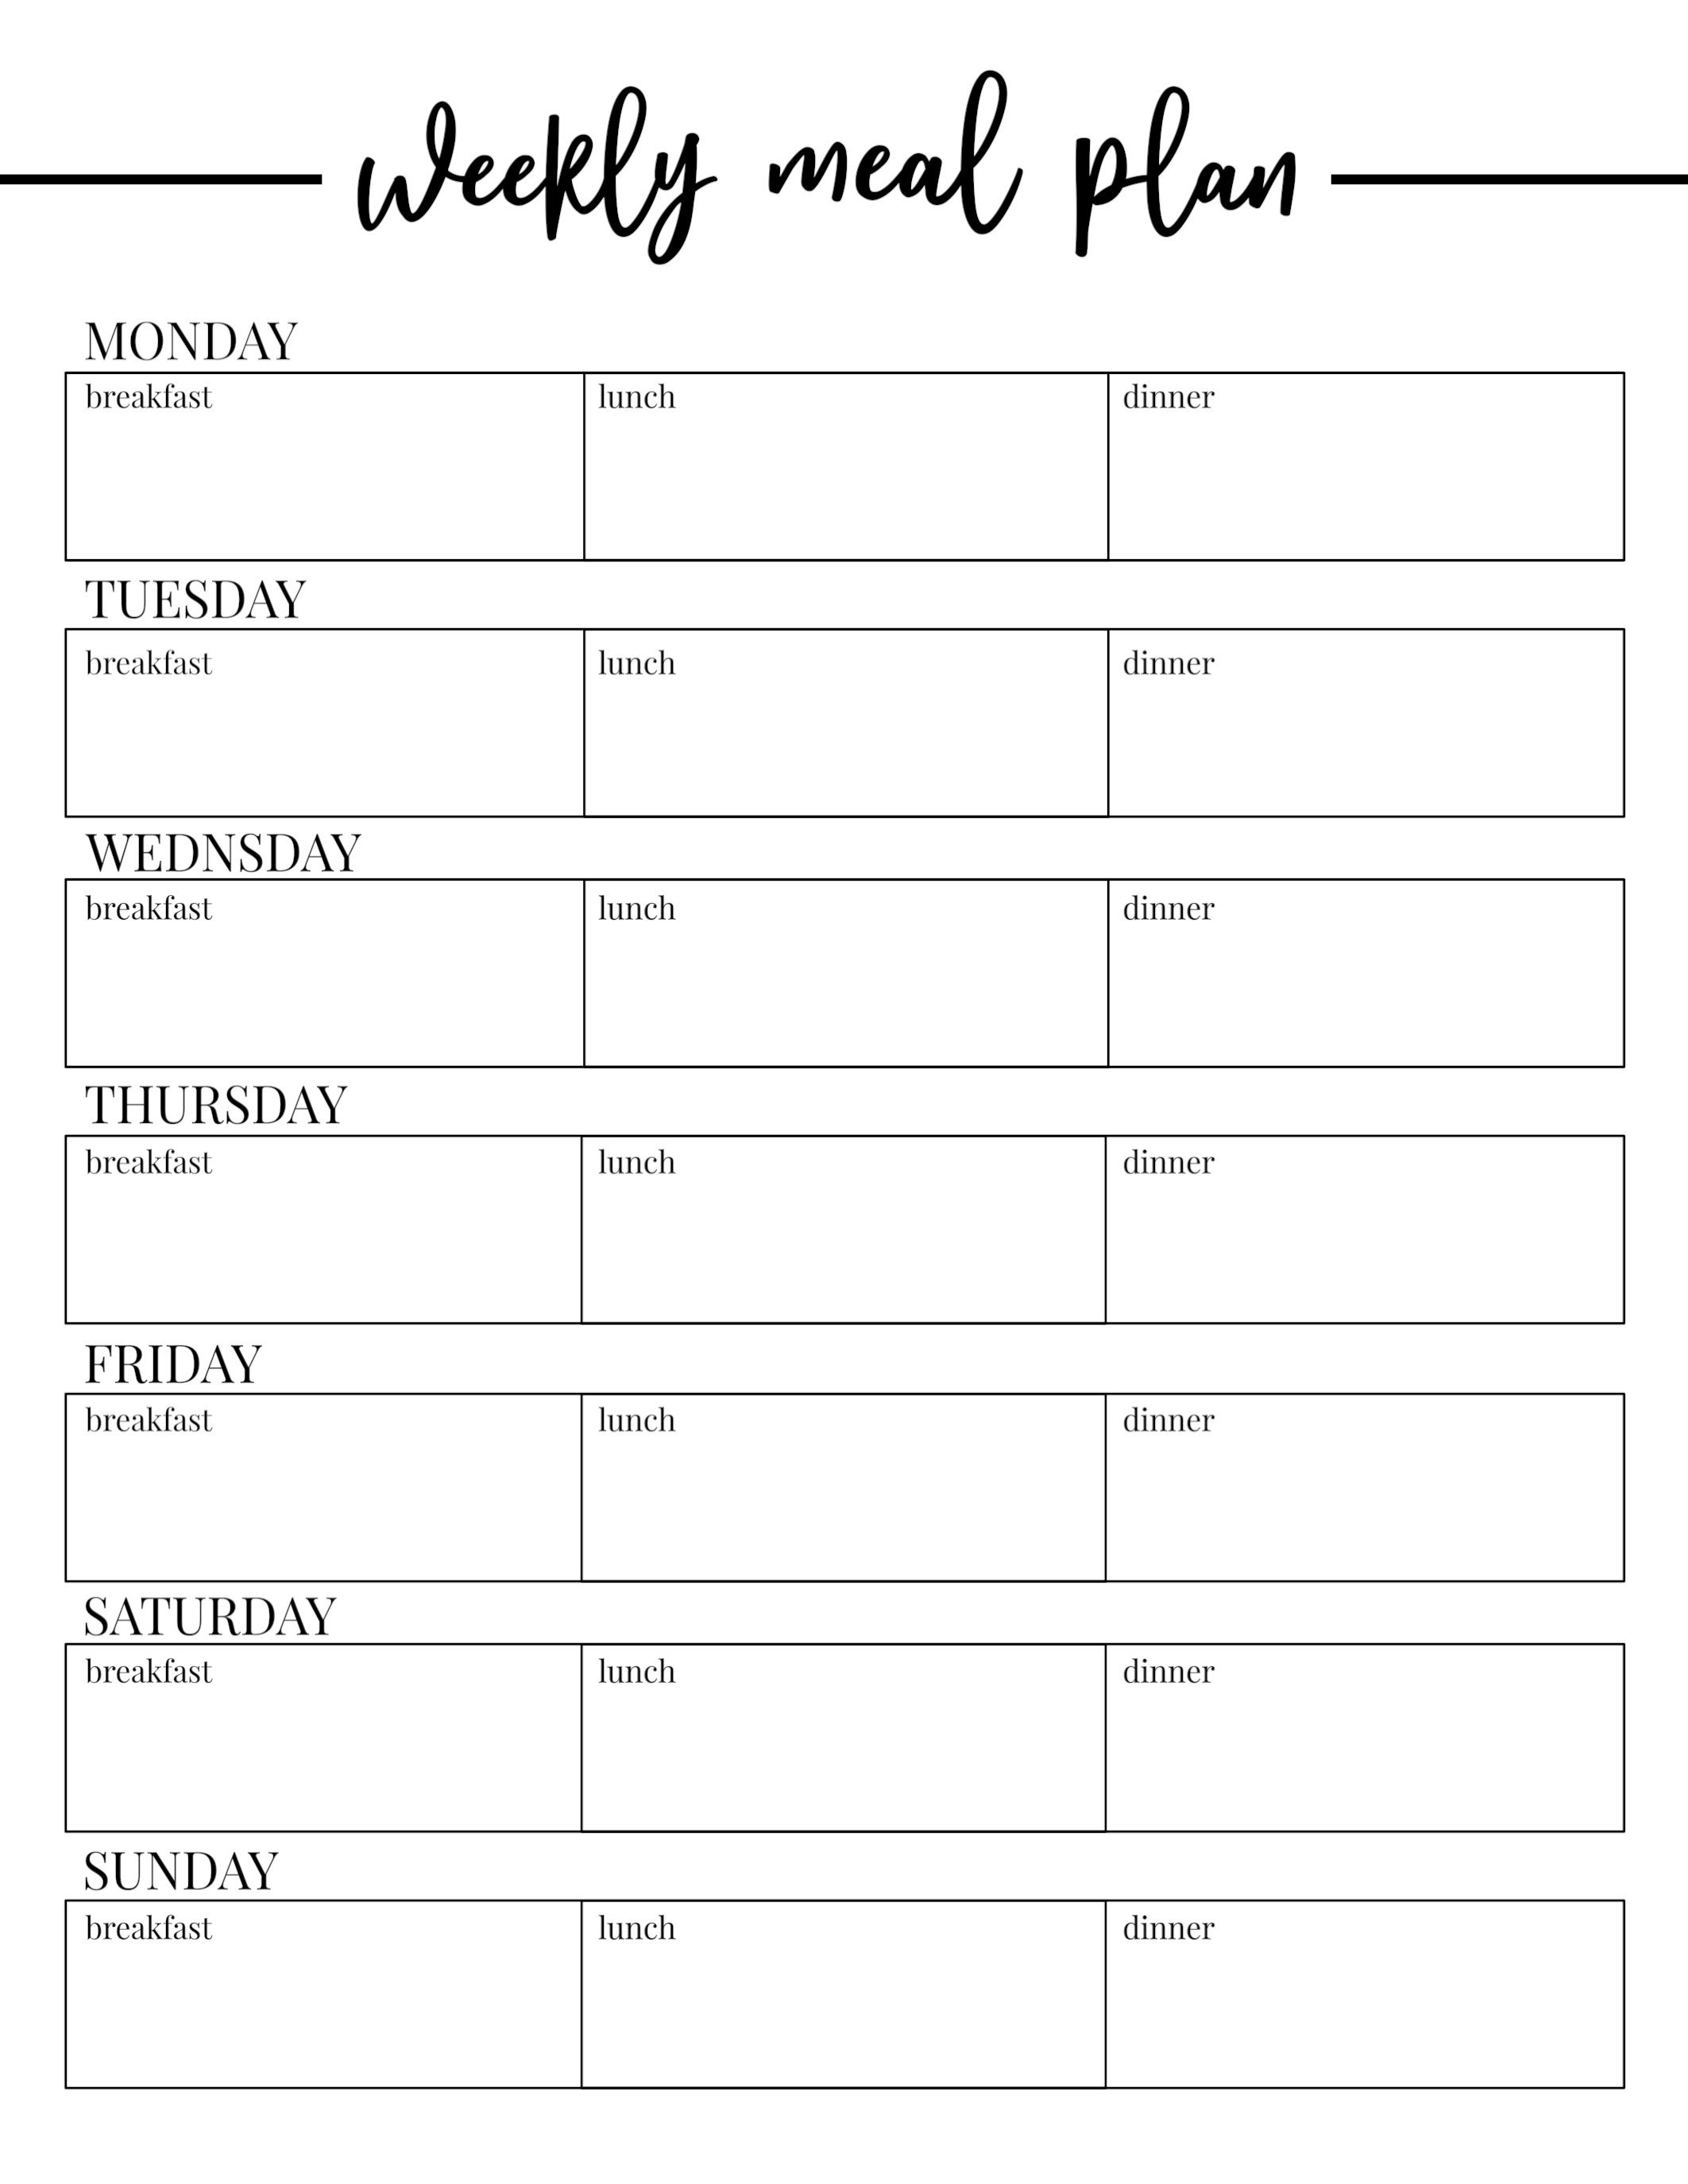 Free Weekly Meal Planner Template Free Printable Weekly Meal Plan Template Paper Trail Design